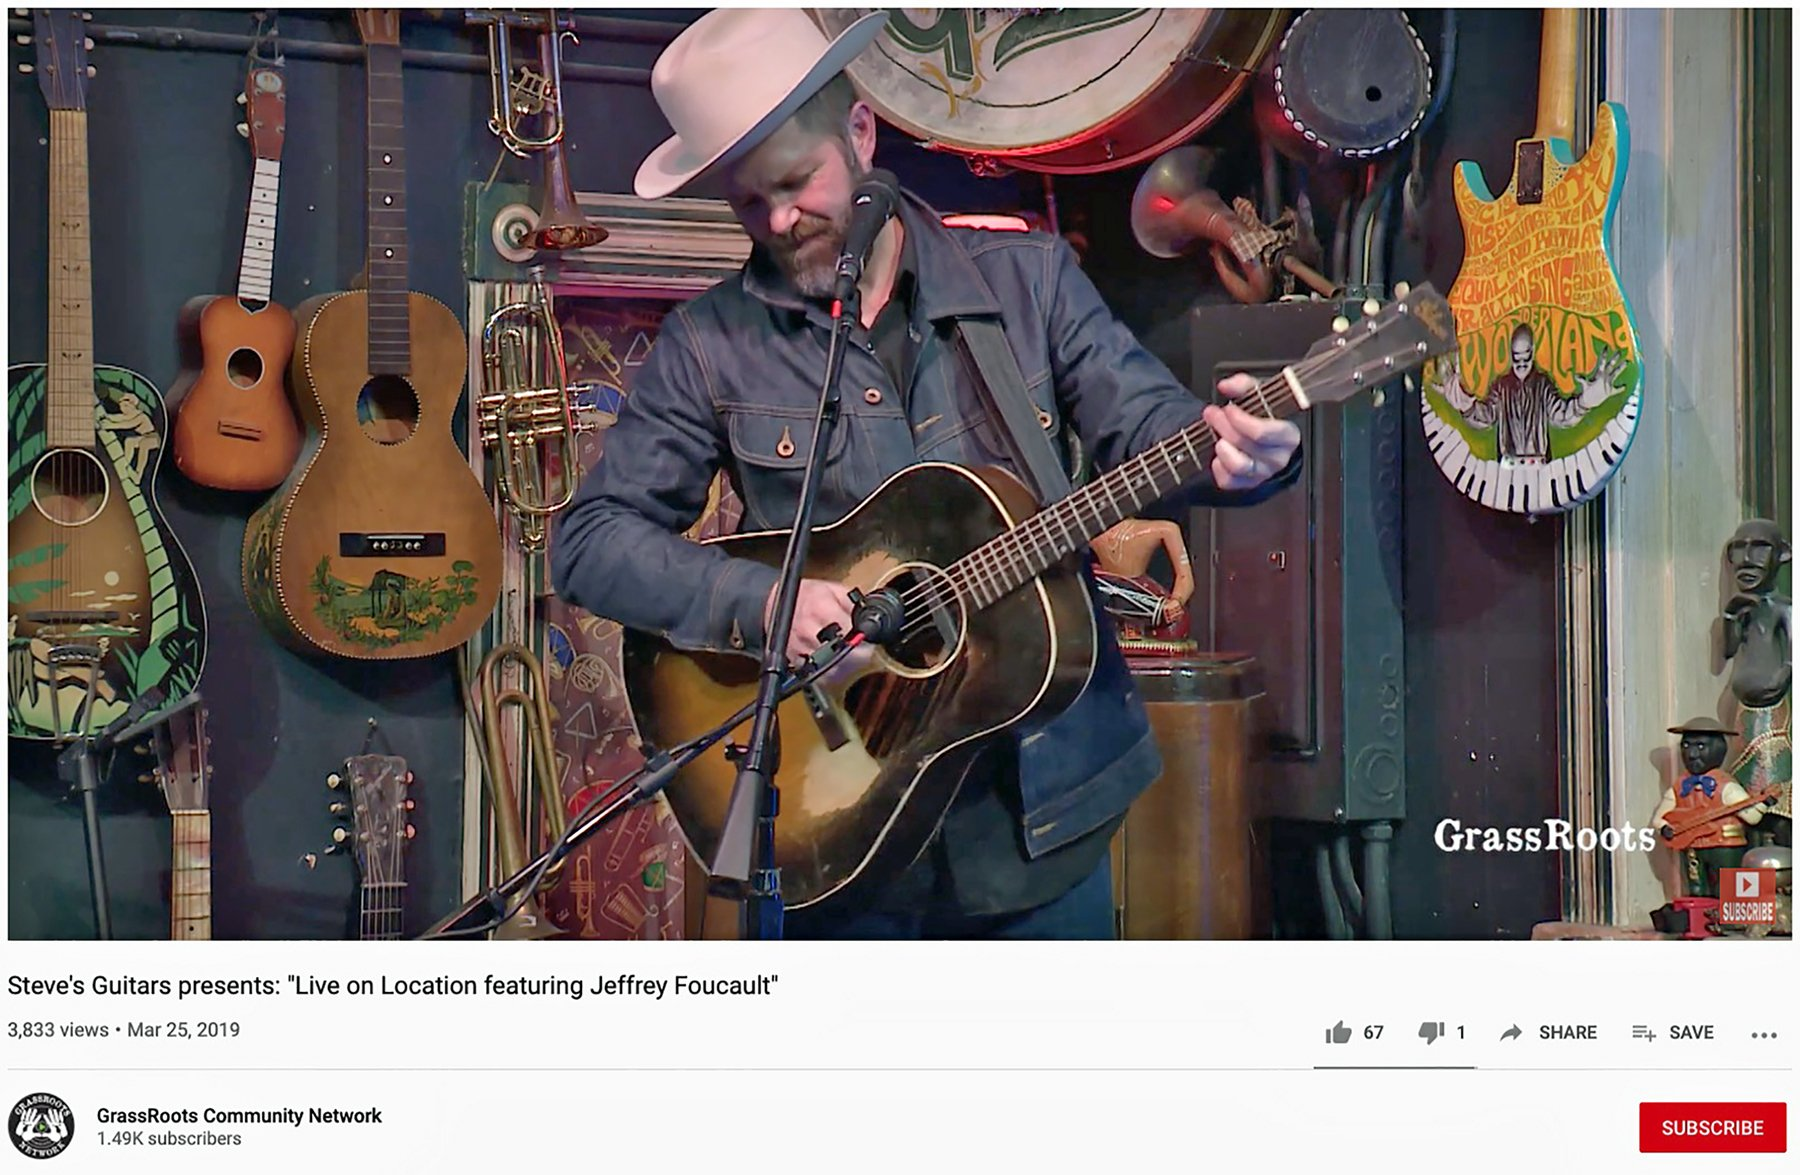 'Streaming Steve's' fundraiser seeks to share the music thumbnail